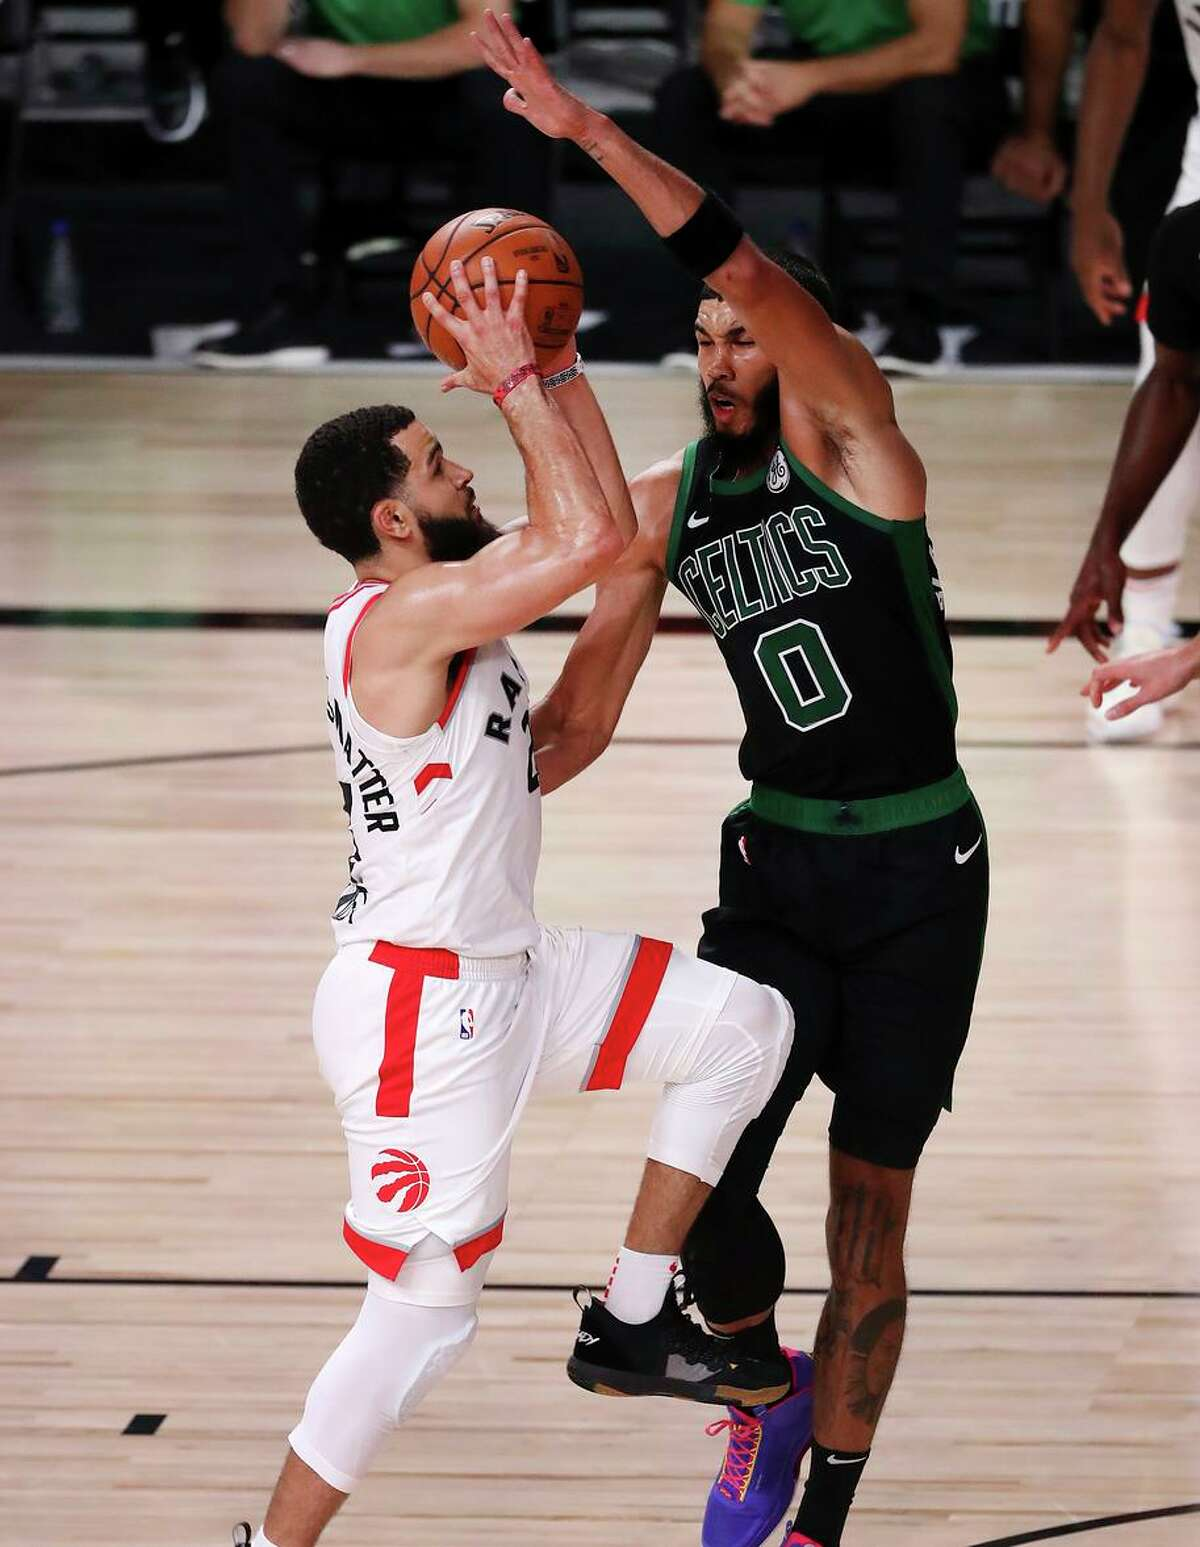 The Raptors' Fred VanVleet shoots over Jayson Tatum of the Celtics in the 2020 playoffs. VanVleet is staying with Toronto.